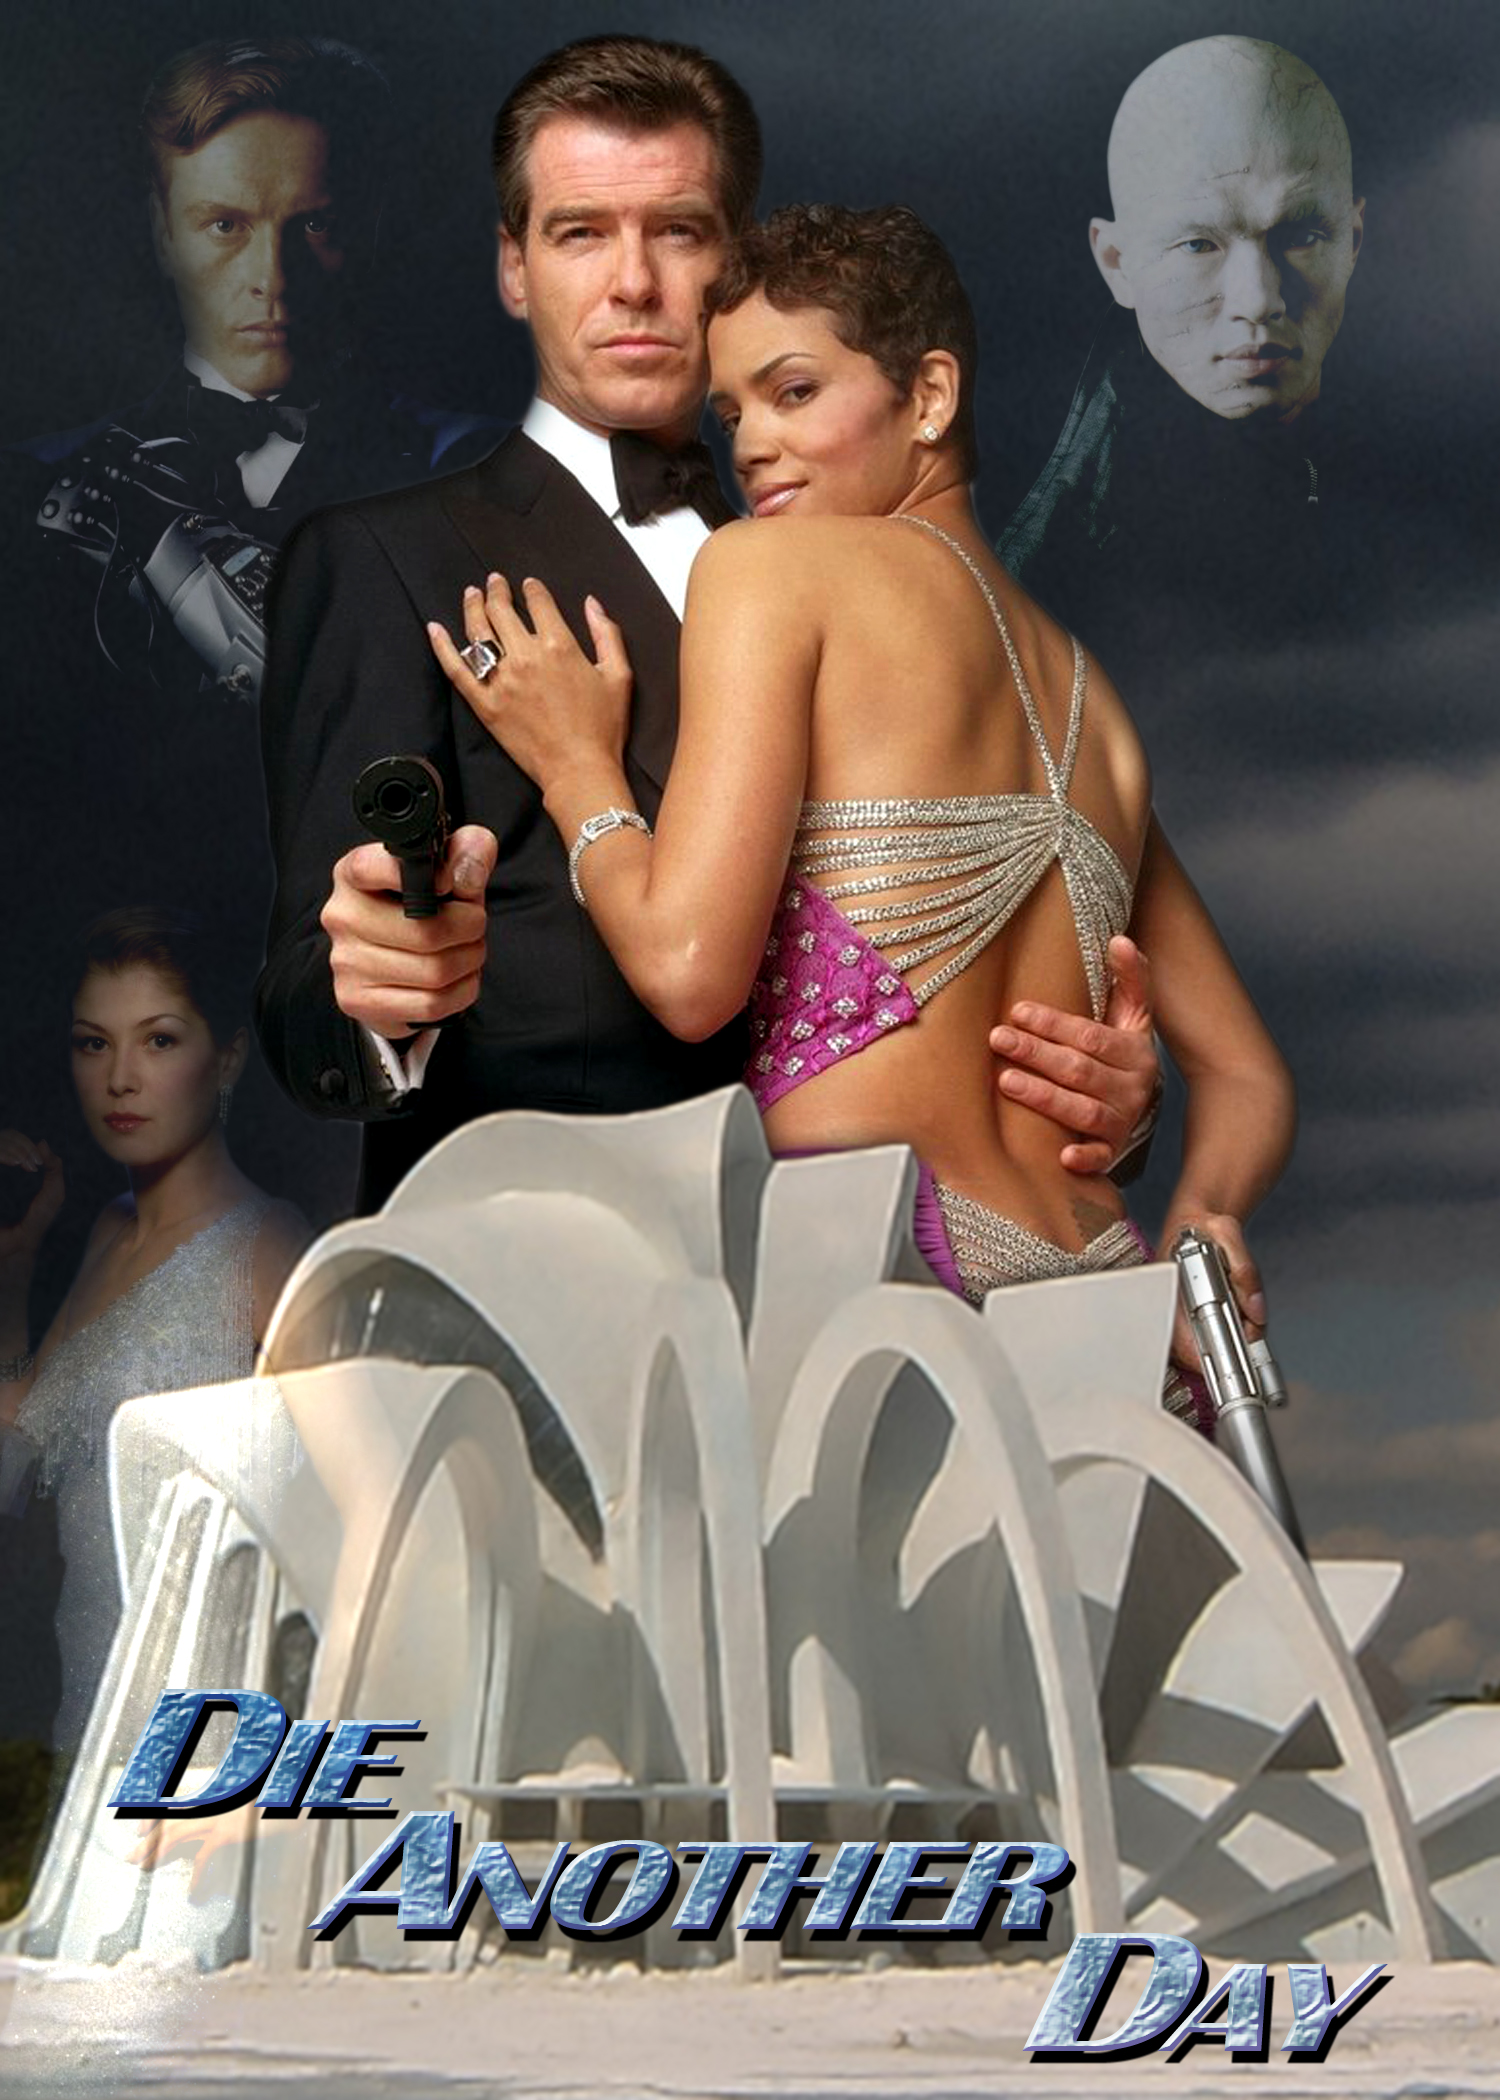 die_another_day_poster_by_comandercool22-d68ldfp.jpg